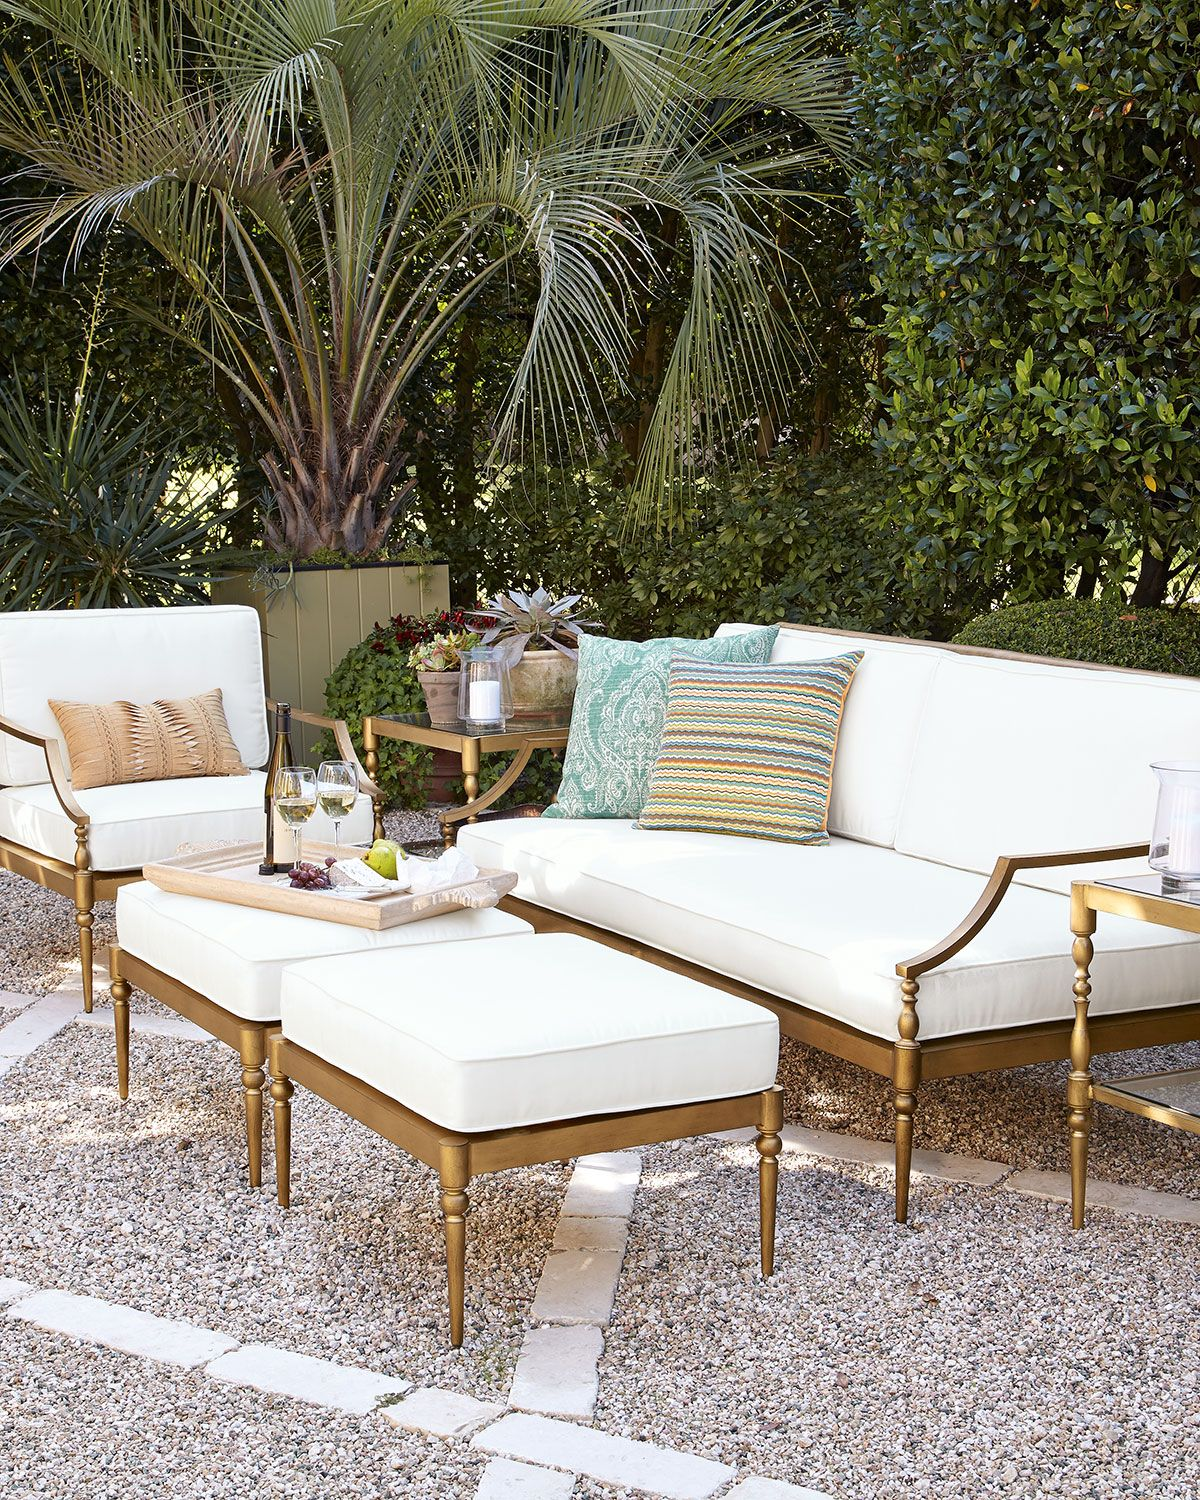 This Is A Great Idea Paint Black Metal Outdoor Furniture Gold For Diffe Look Horchow Sophia Sofa Chair Ottoman